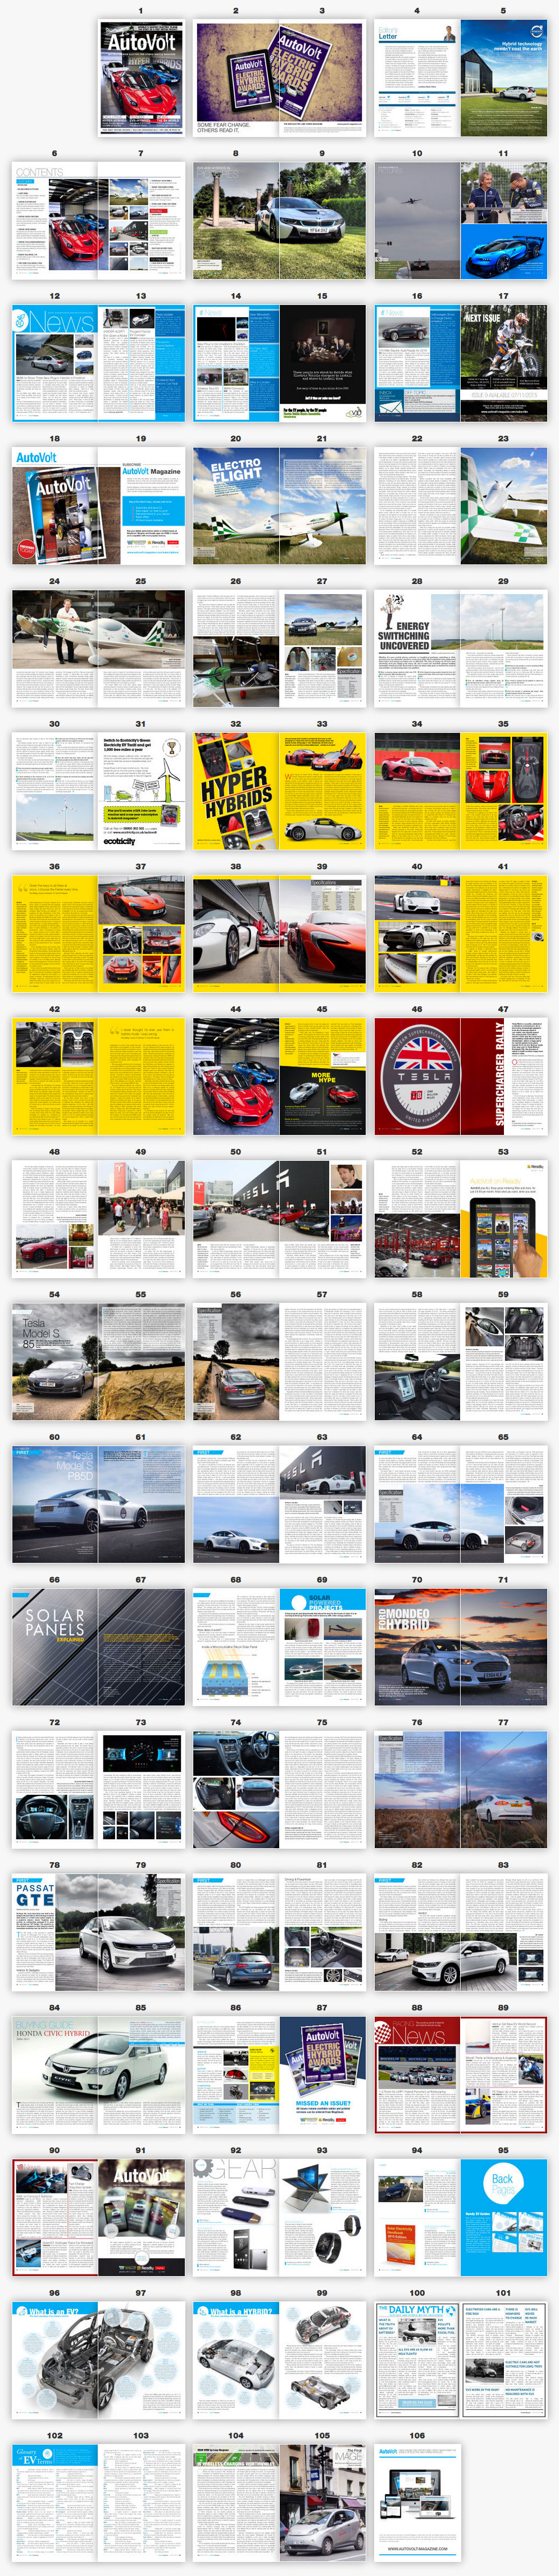 AutoVolt Issue 8 magazine spread layout